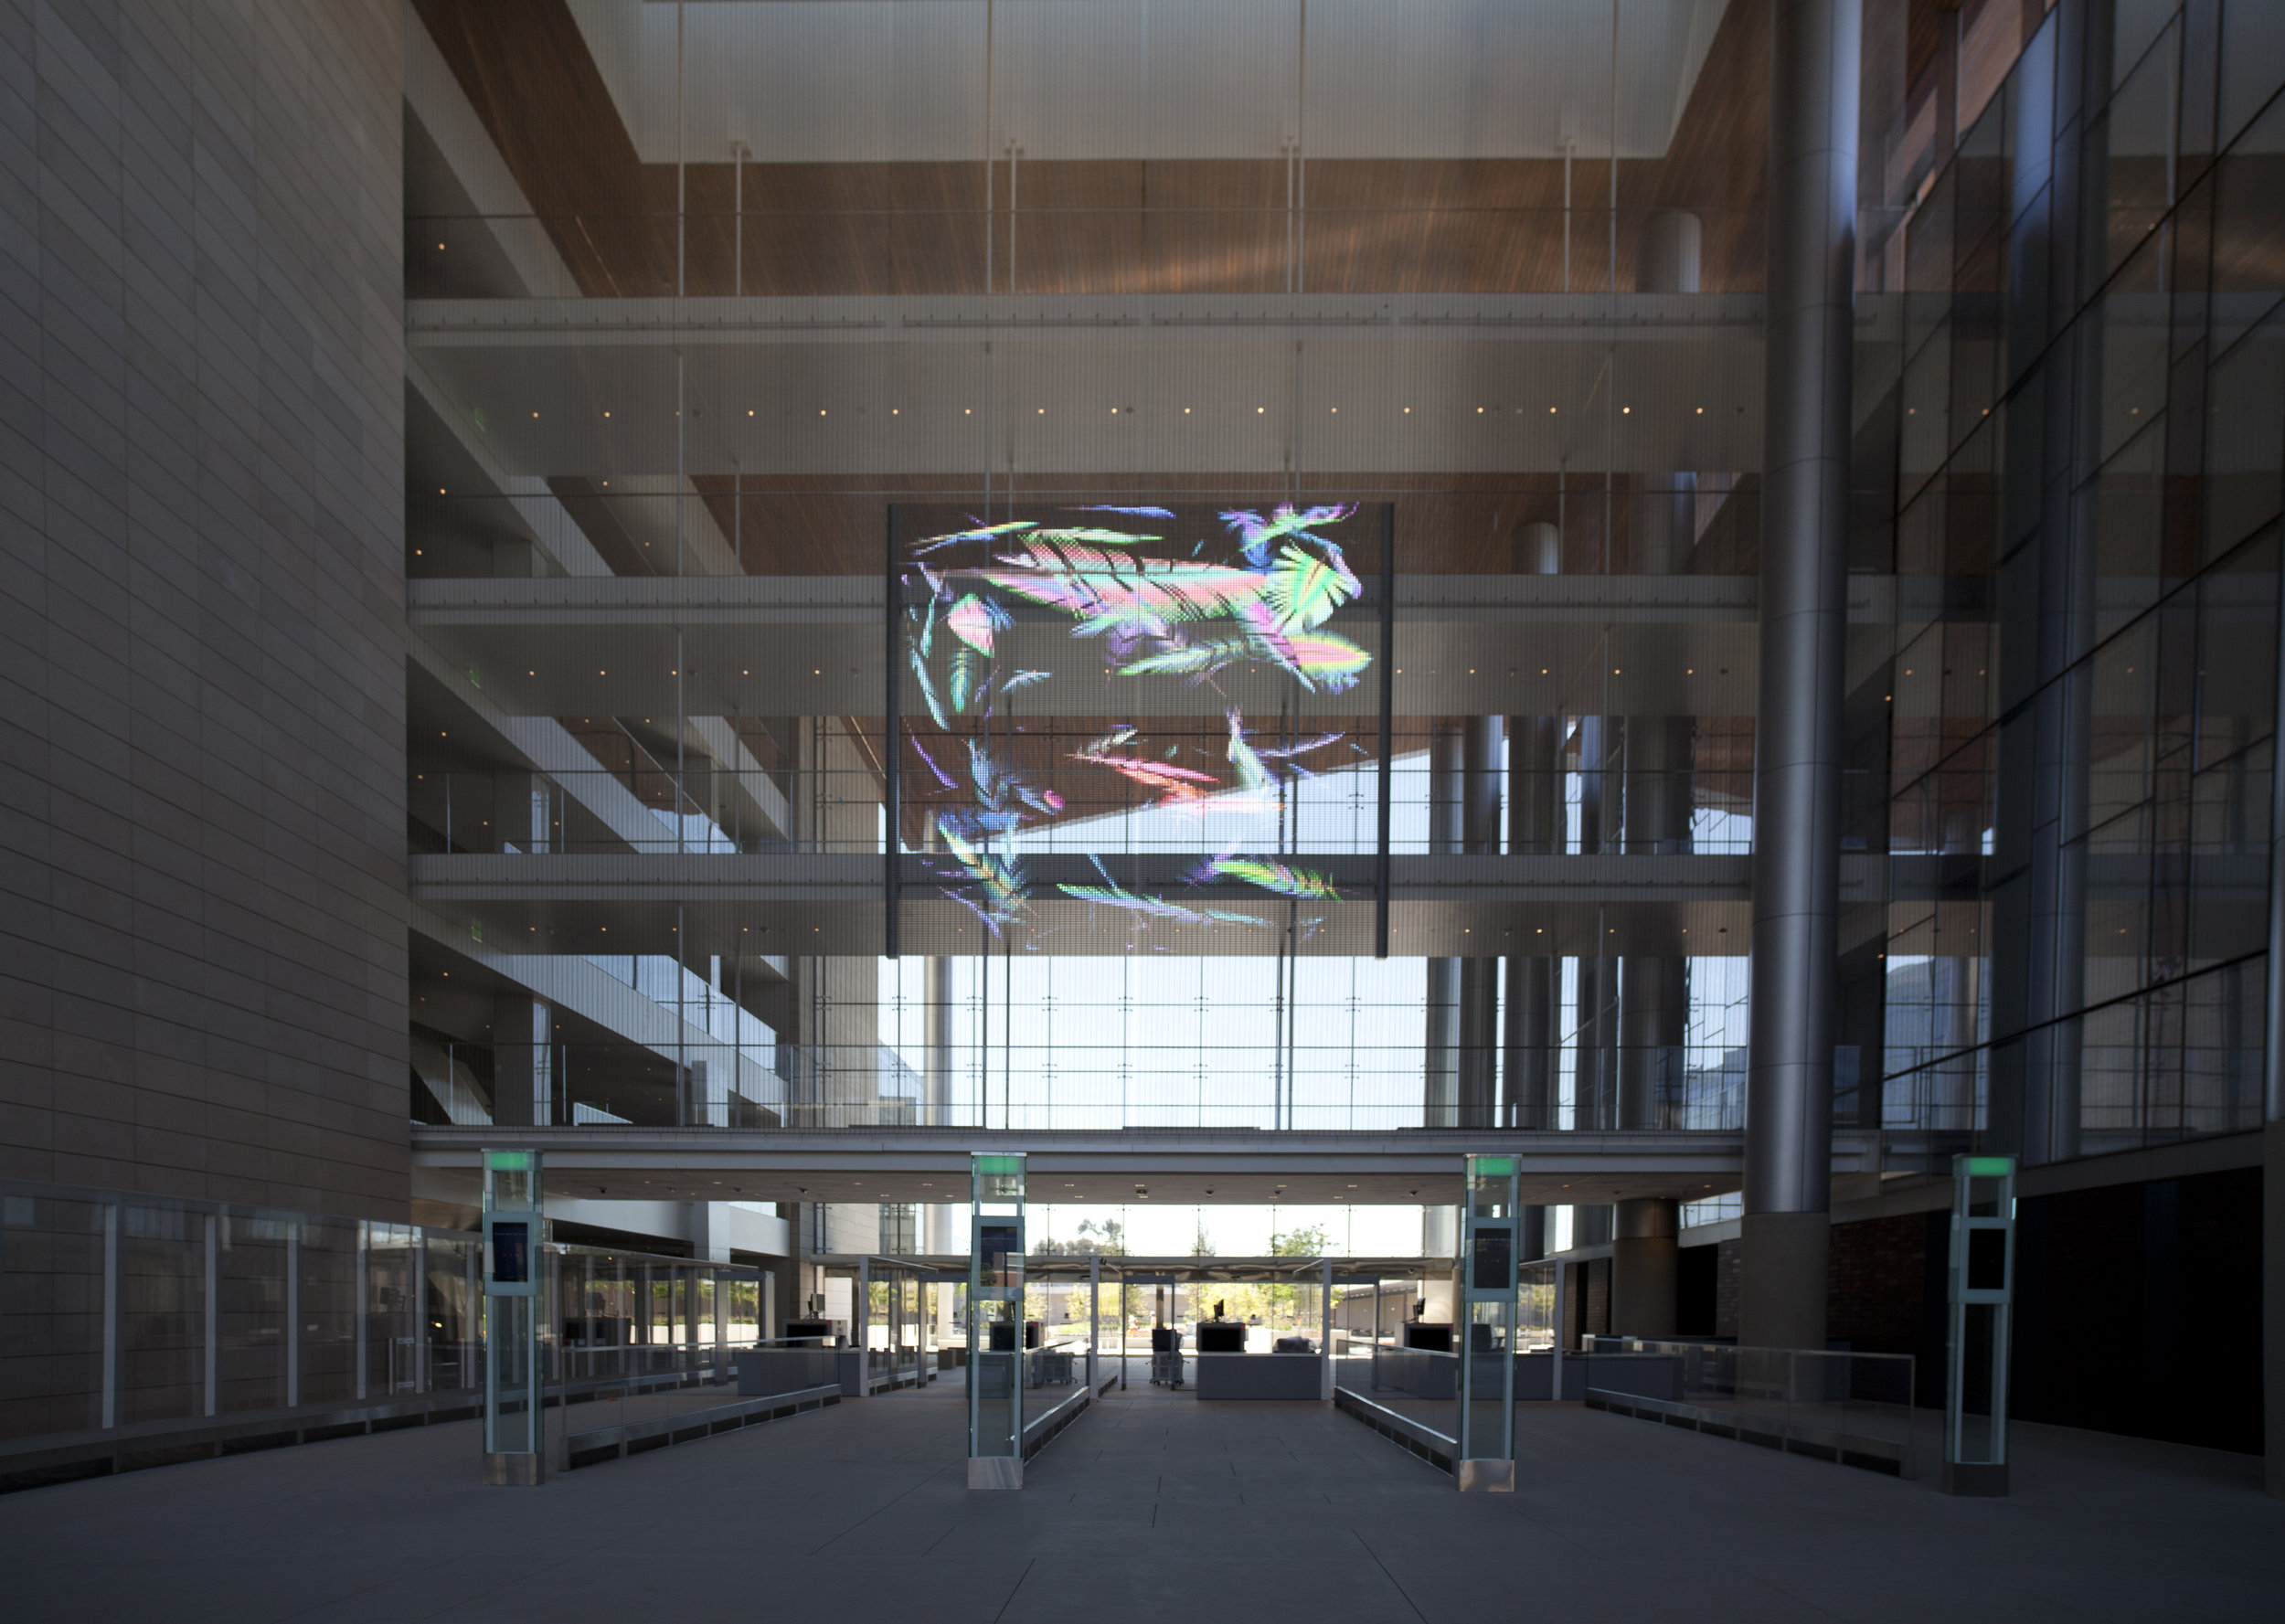 Full view of atrium lobby space